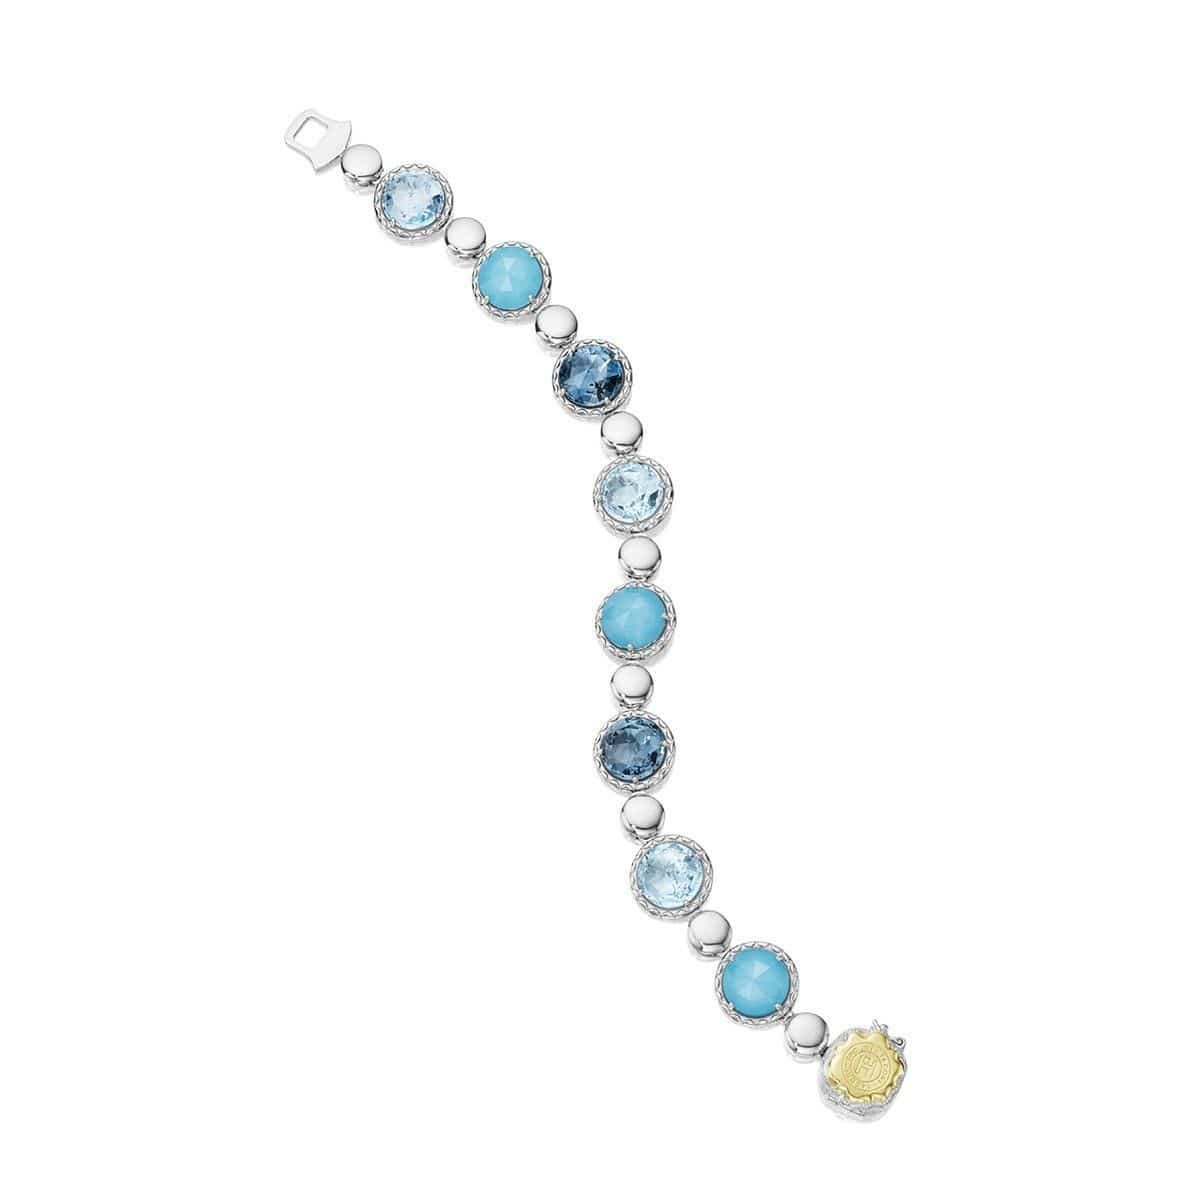 Multi Color Clear Quartz Turquoise Bracelet - SB155050233-Tacori-Renee Taylor Gallery